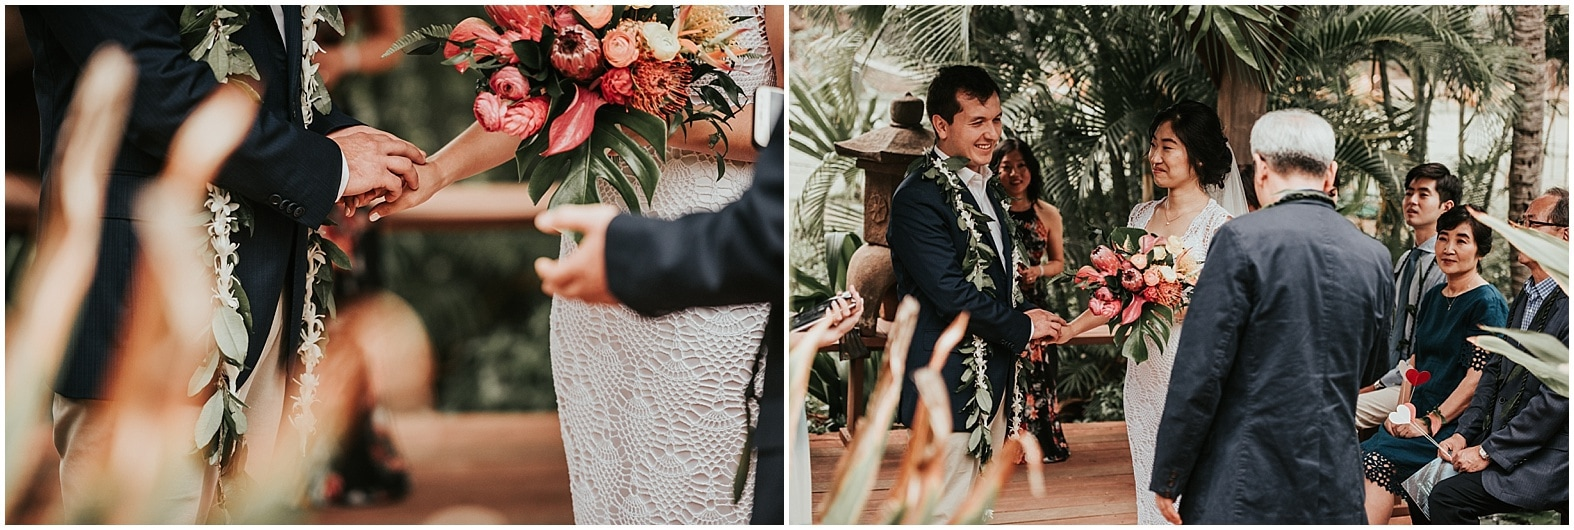 Oahu wedding photographer36